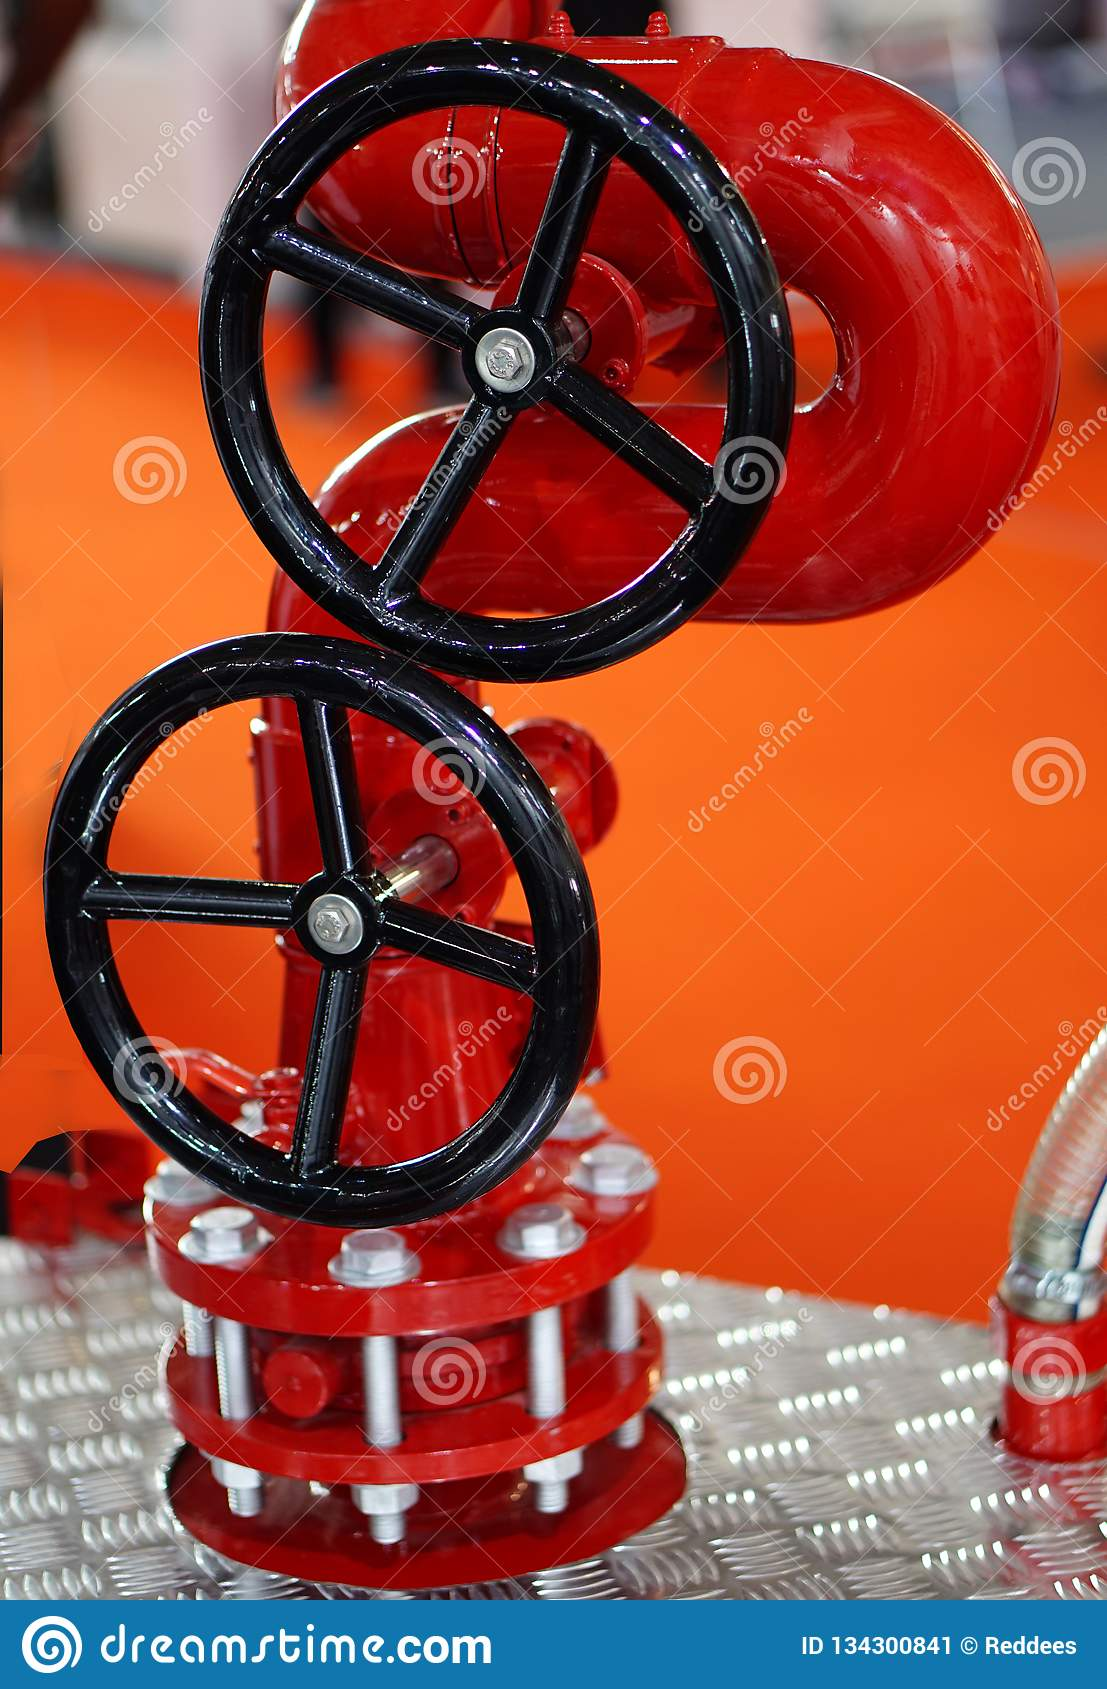 View of fire protection equipment valve in an industry